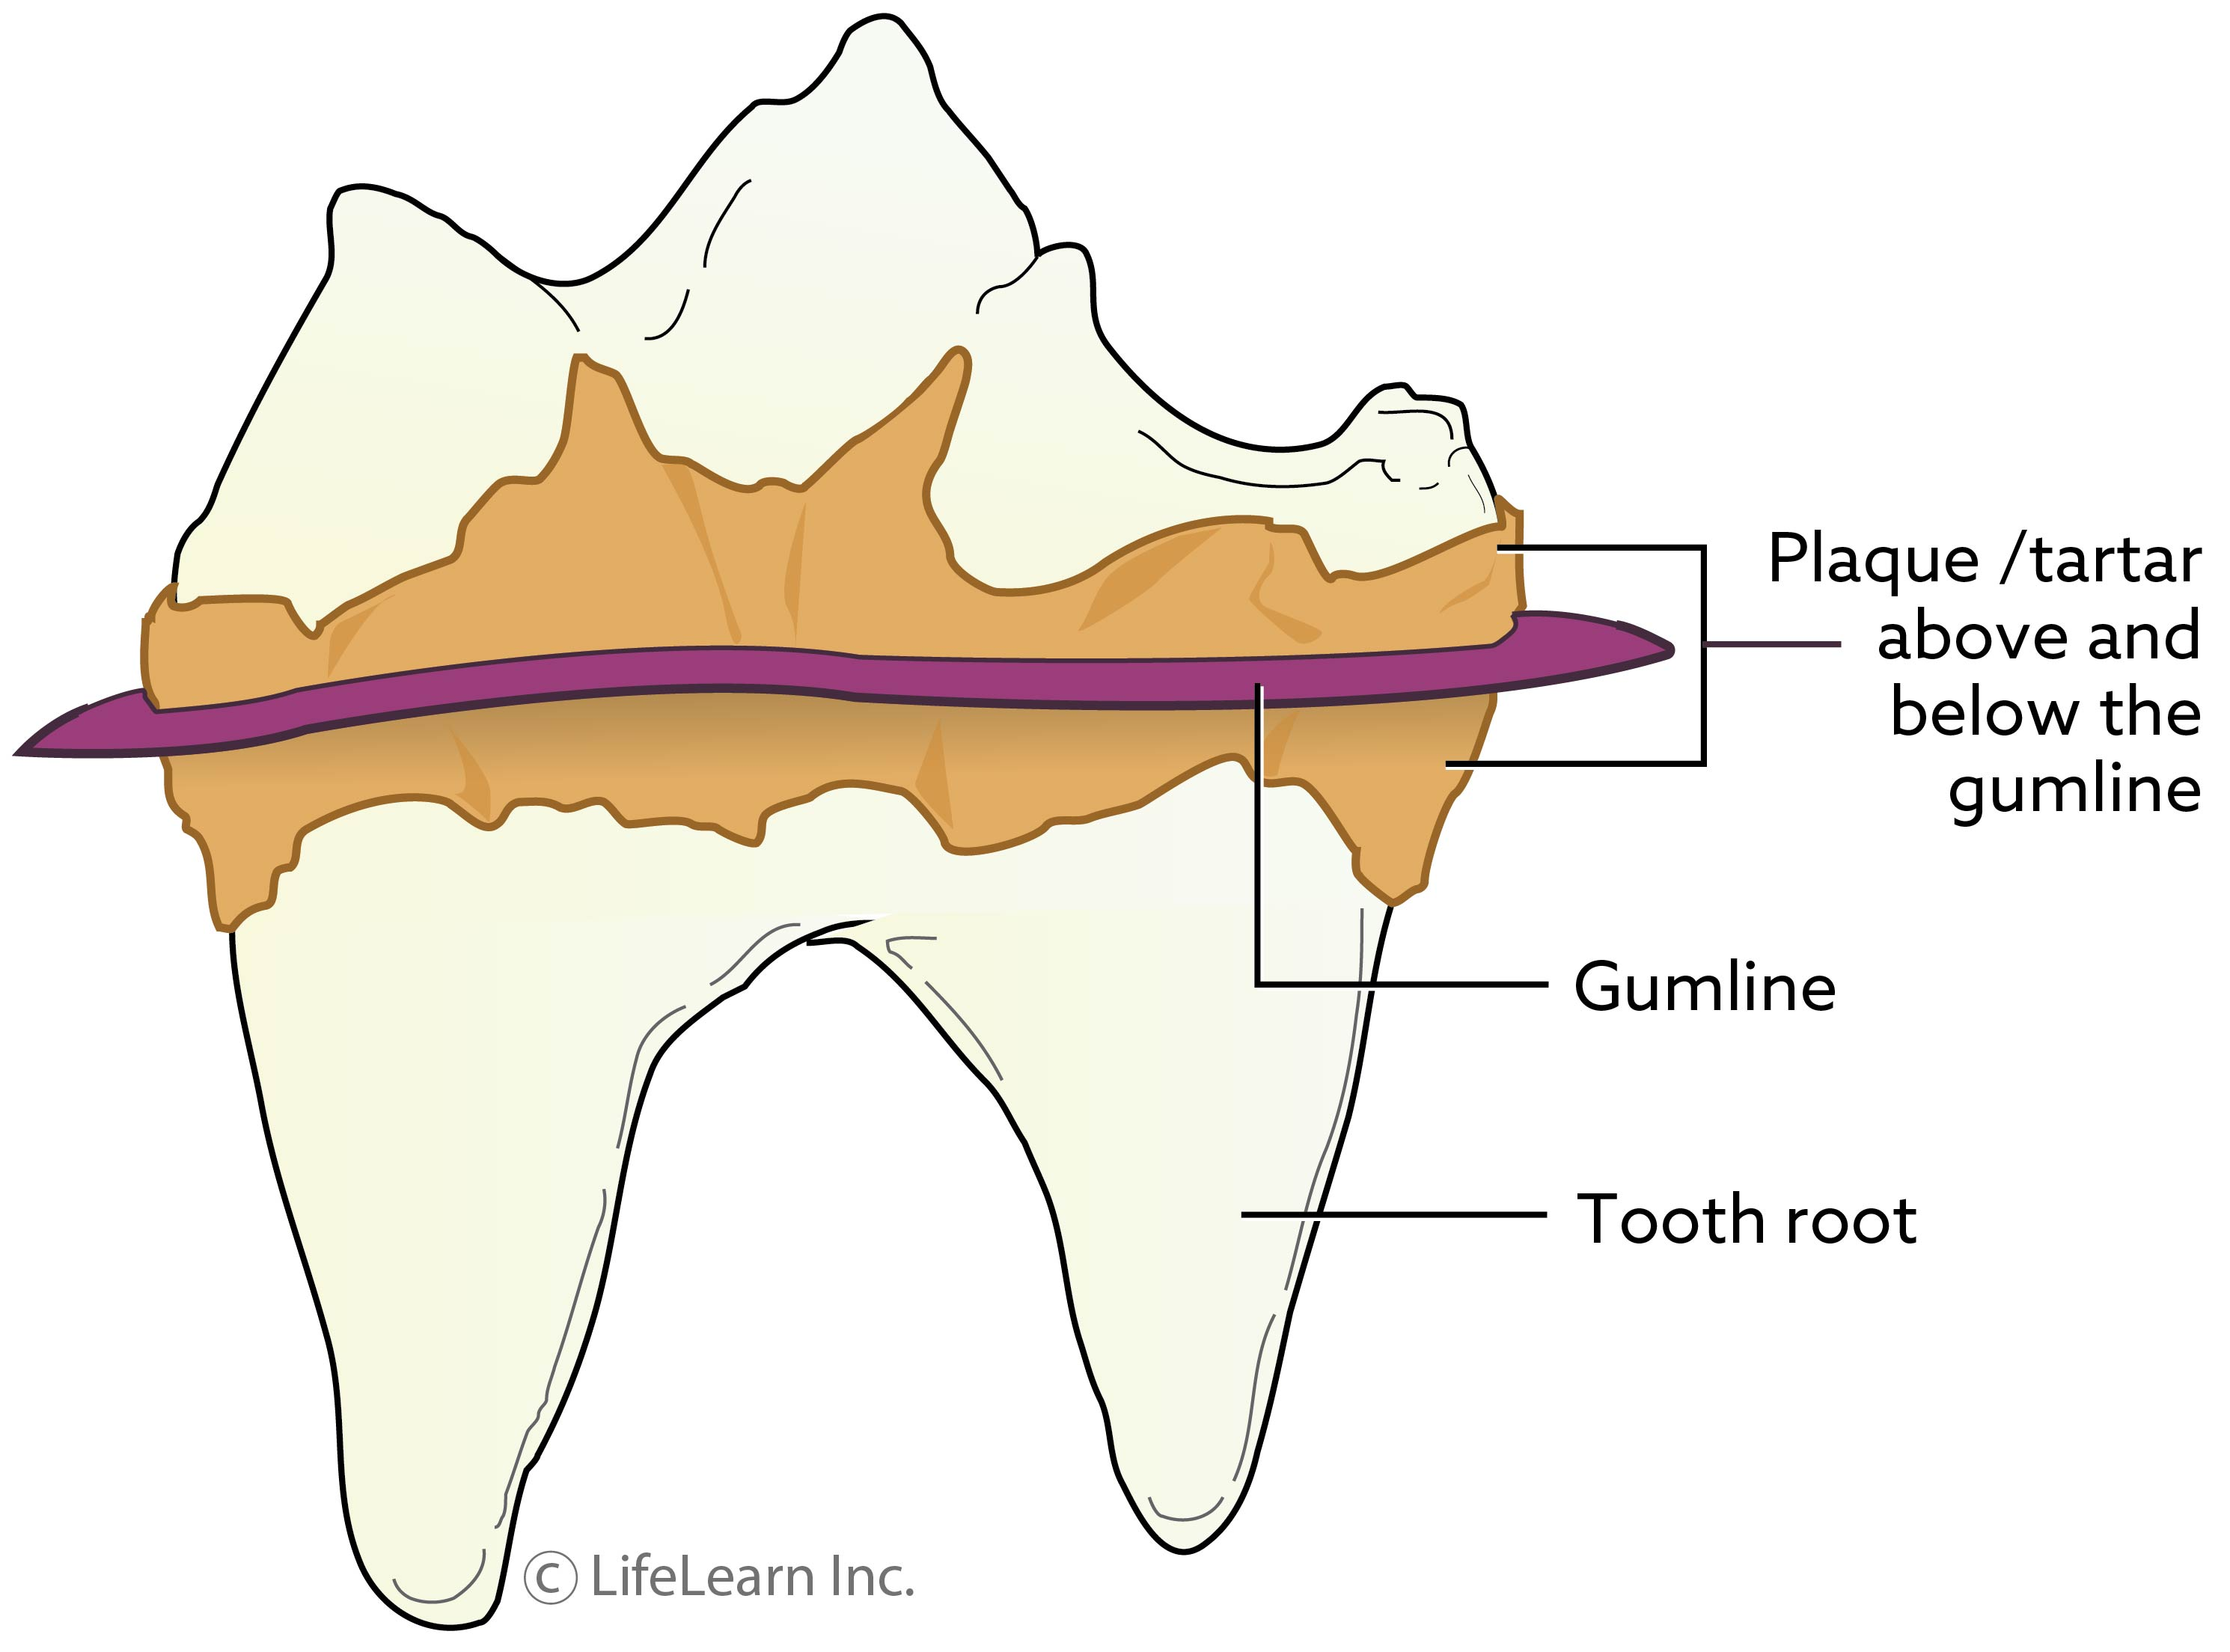 tooth-plaque_updated2017_2